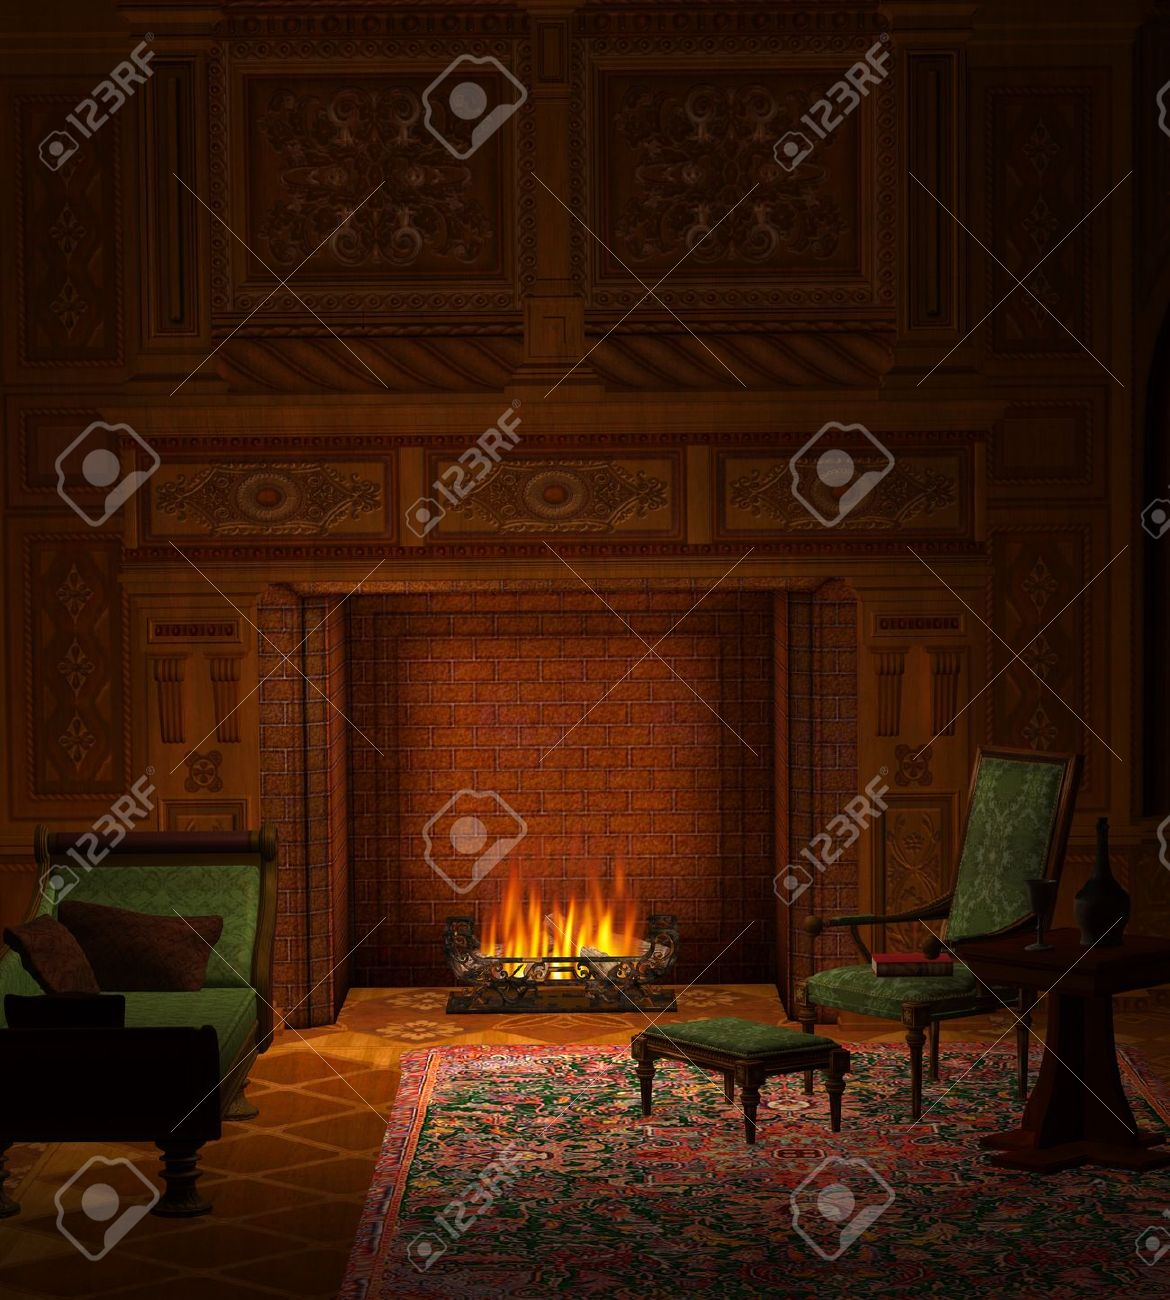 Cozy Room 14,229 cozy cliparts, stock vector and royalty free cozy illustrations